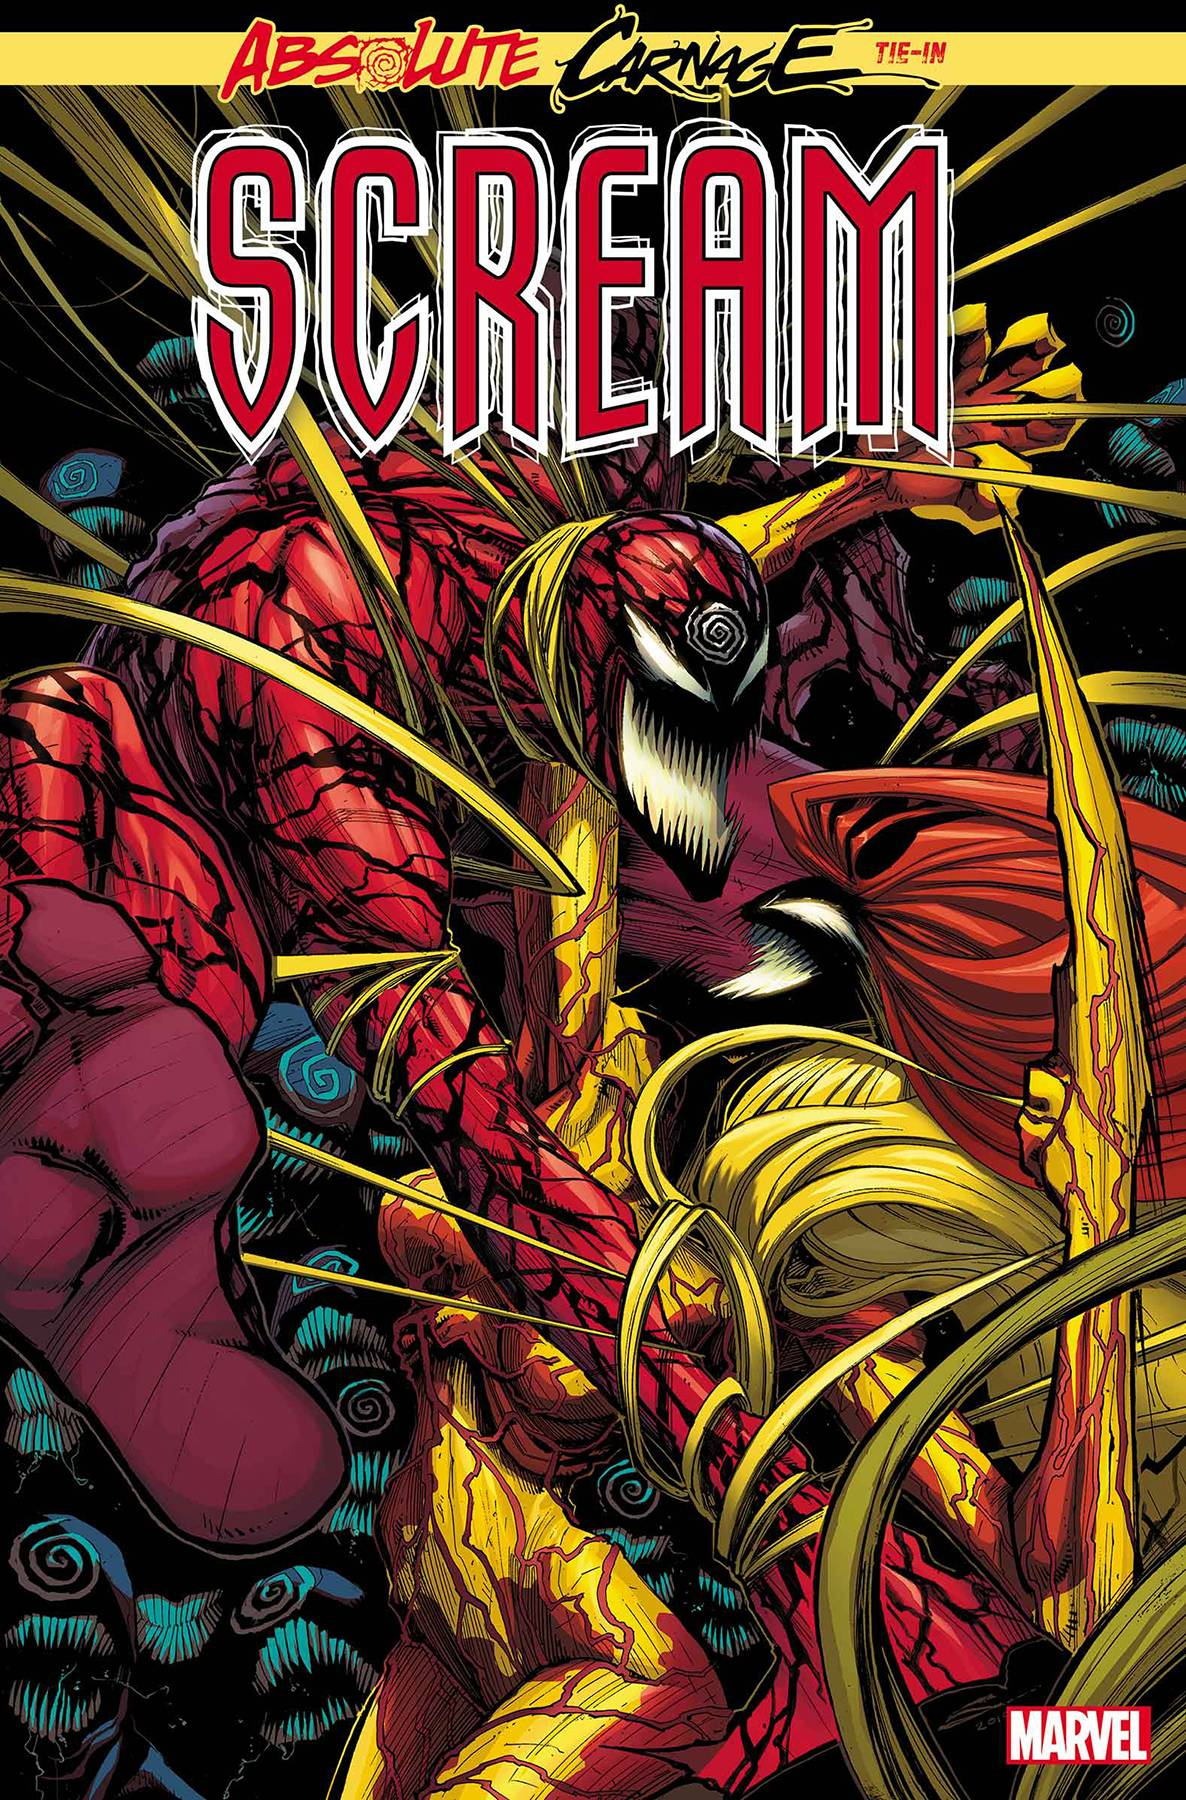 10/16/2019 ABSOLUTE CARNAGE SCREAM #3 (OF 3) AC